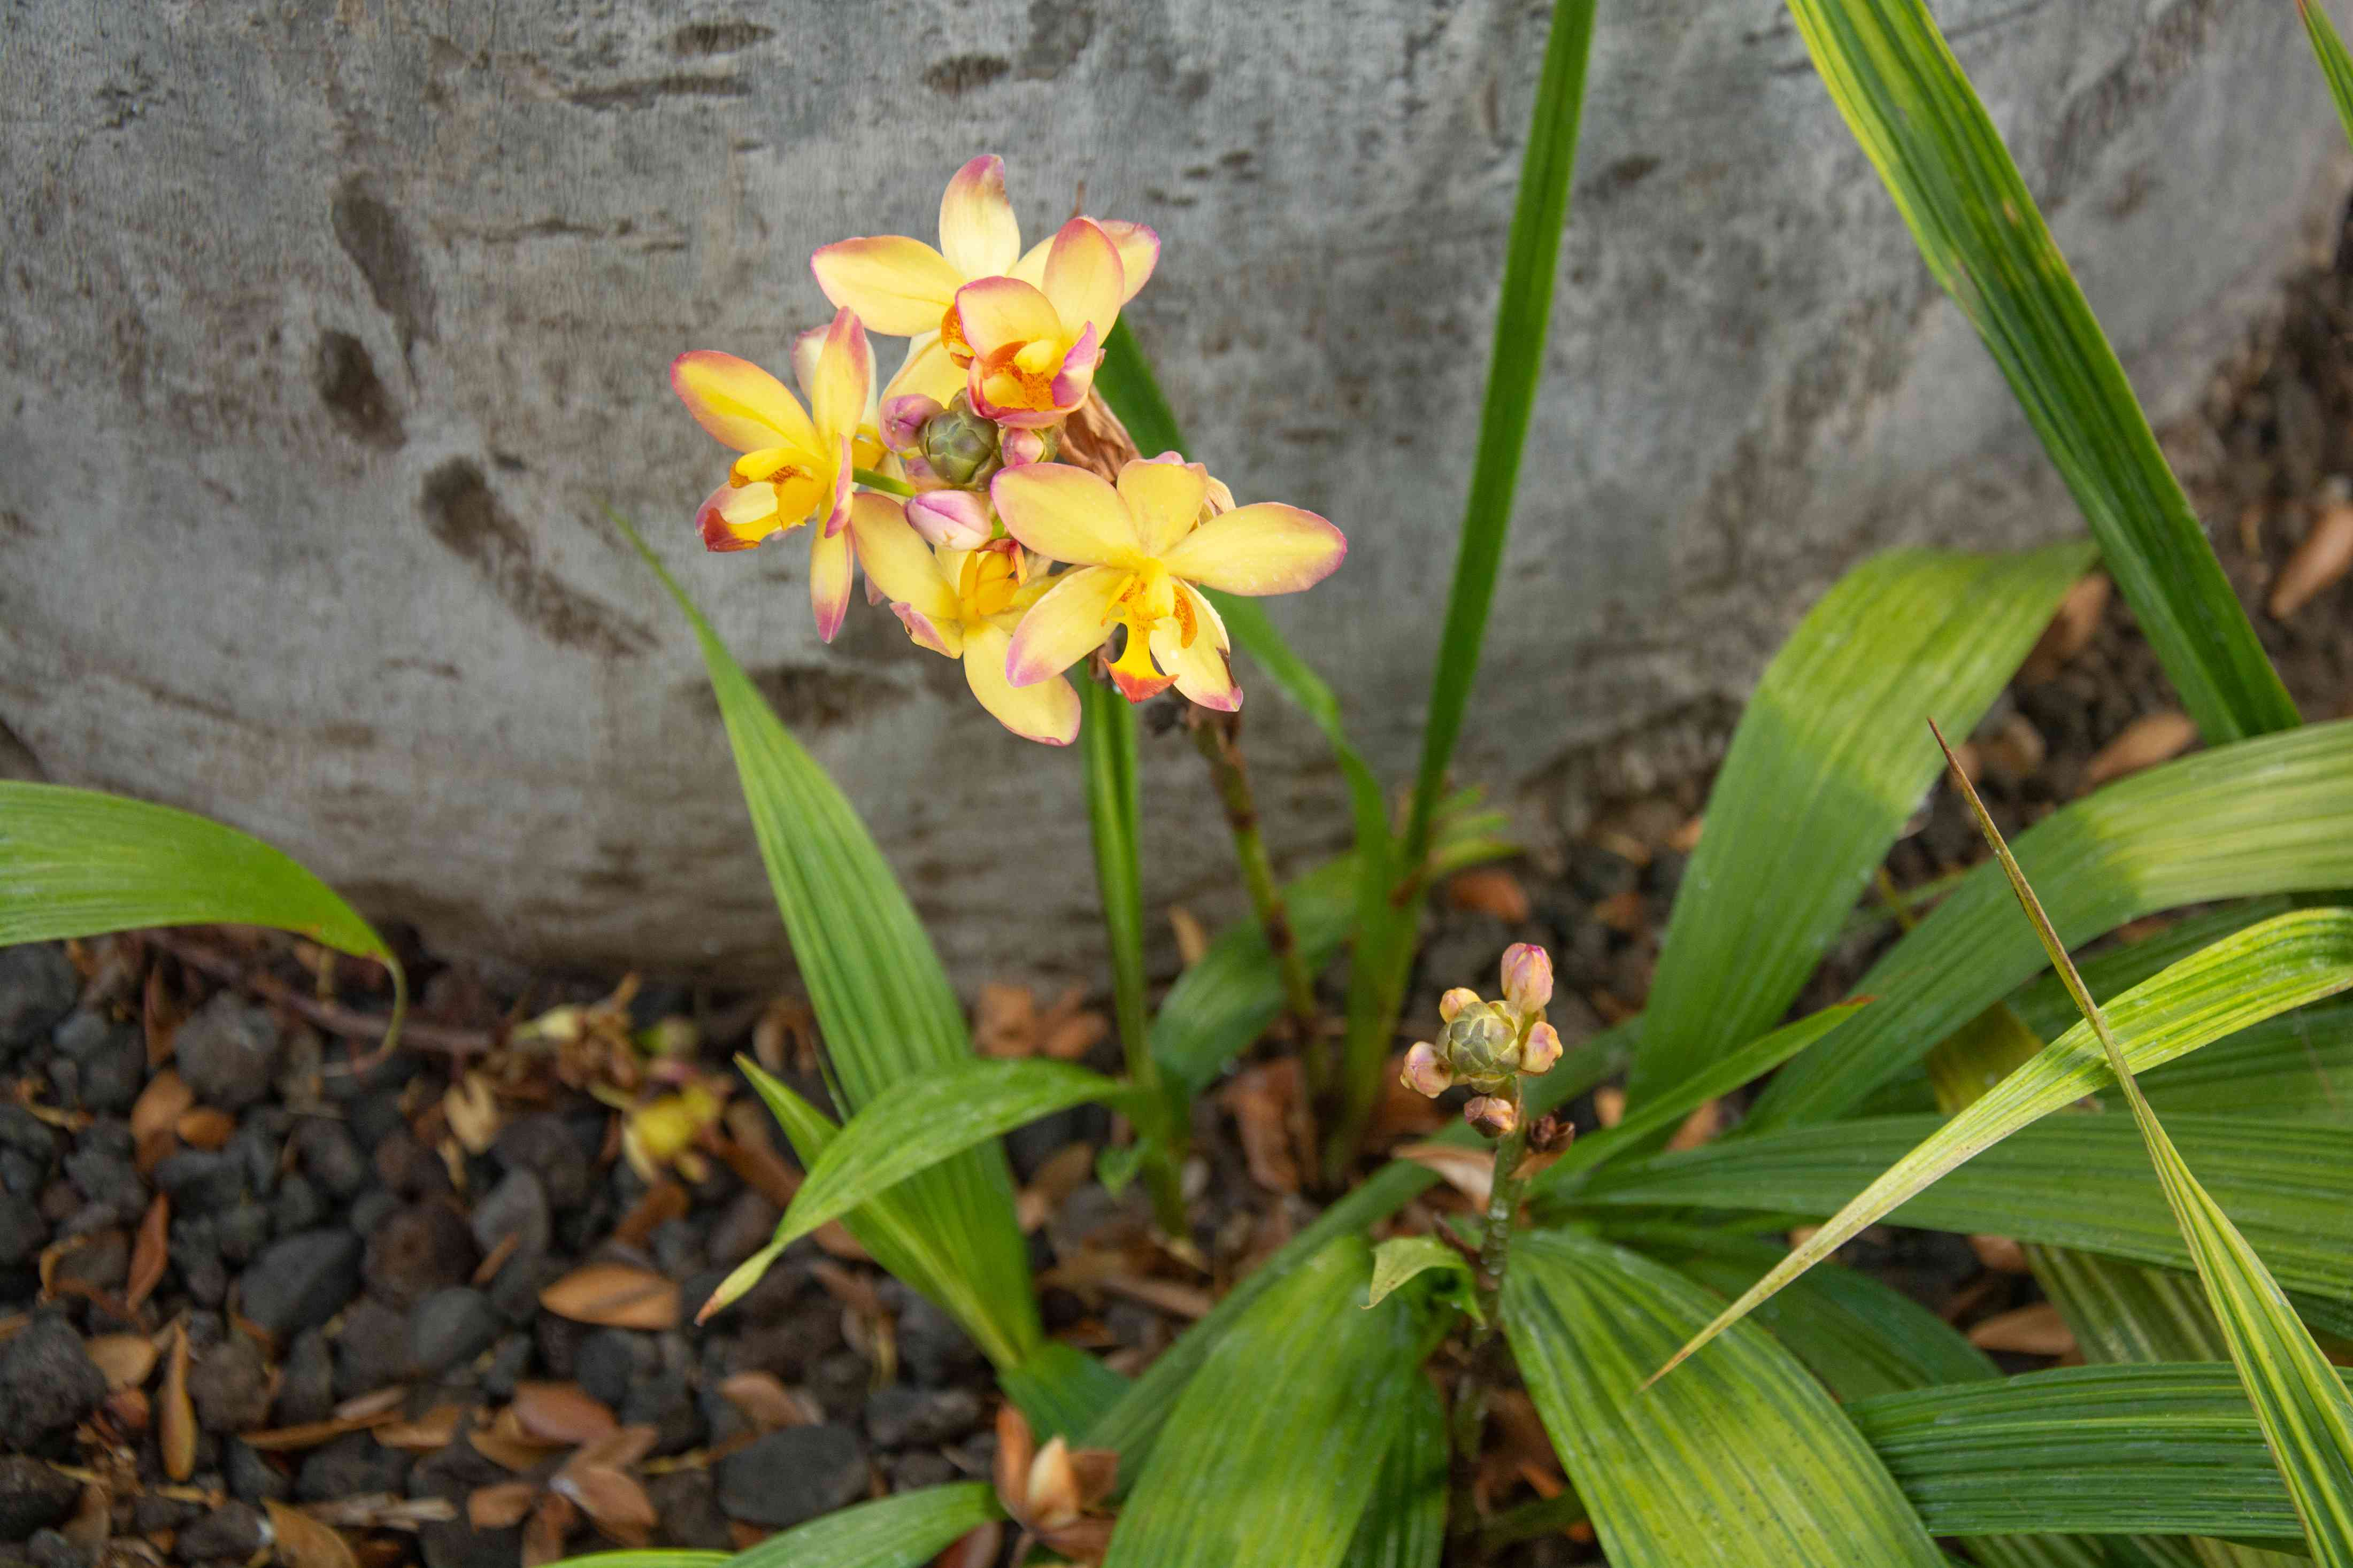 Spathoglottis orchids with yellow flowers with pink tips surrounded by long thick leaf blades